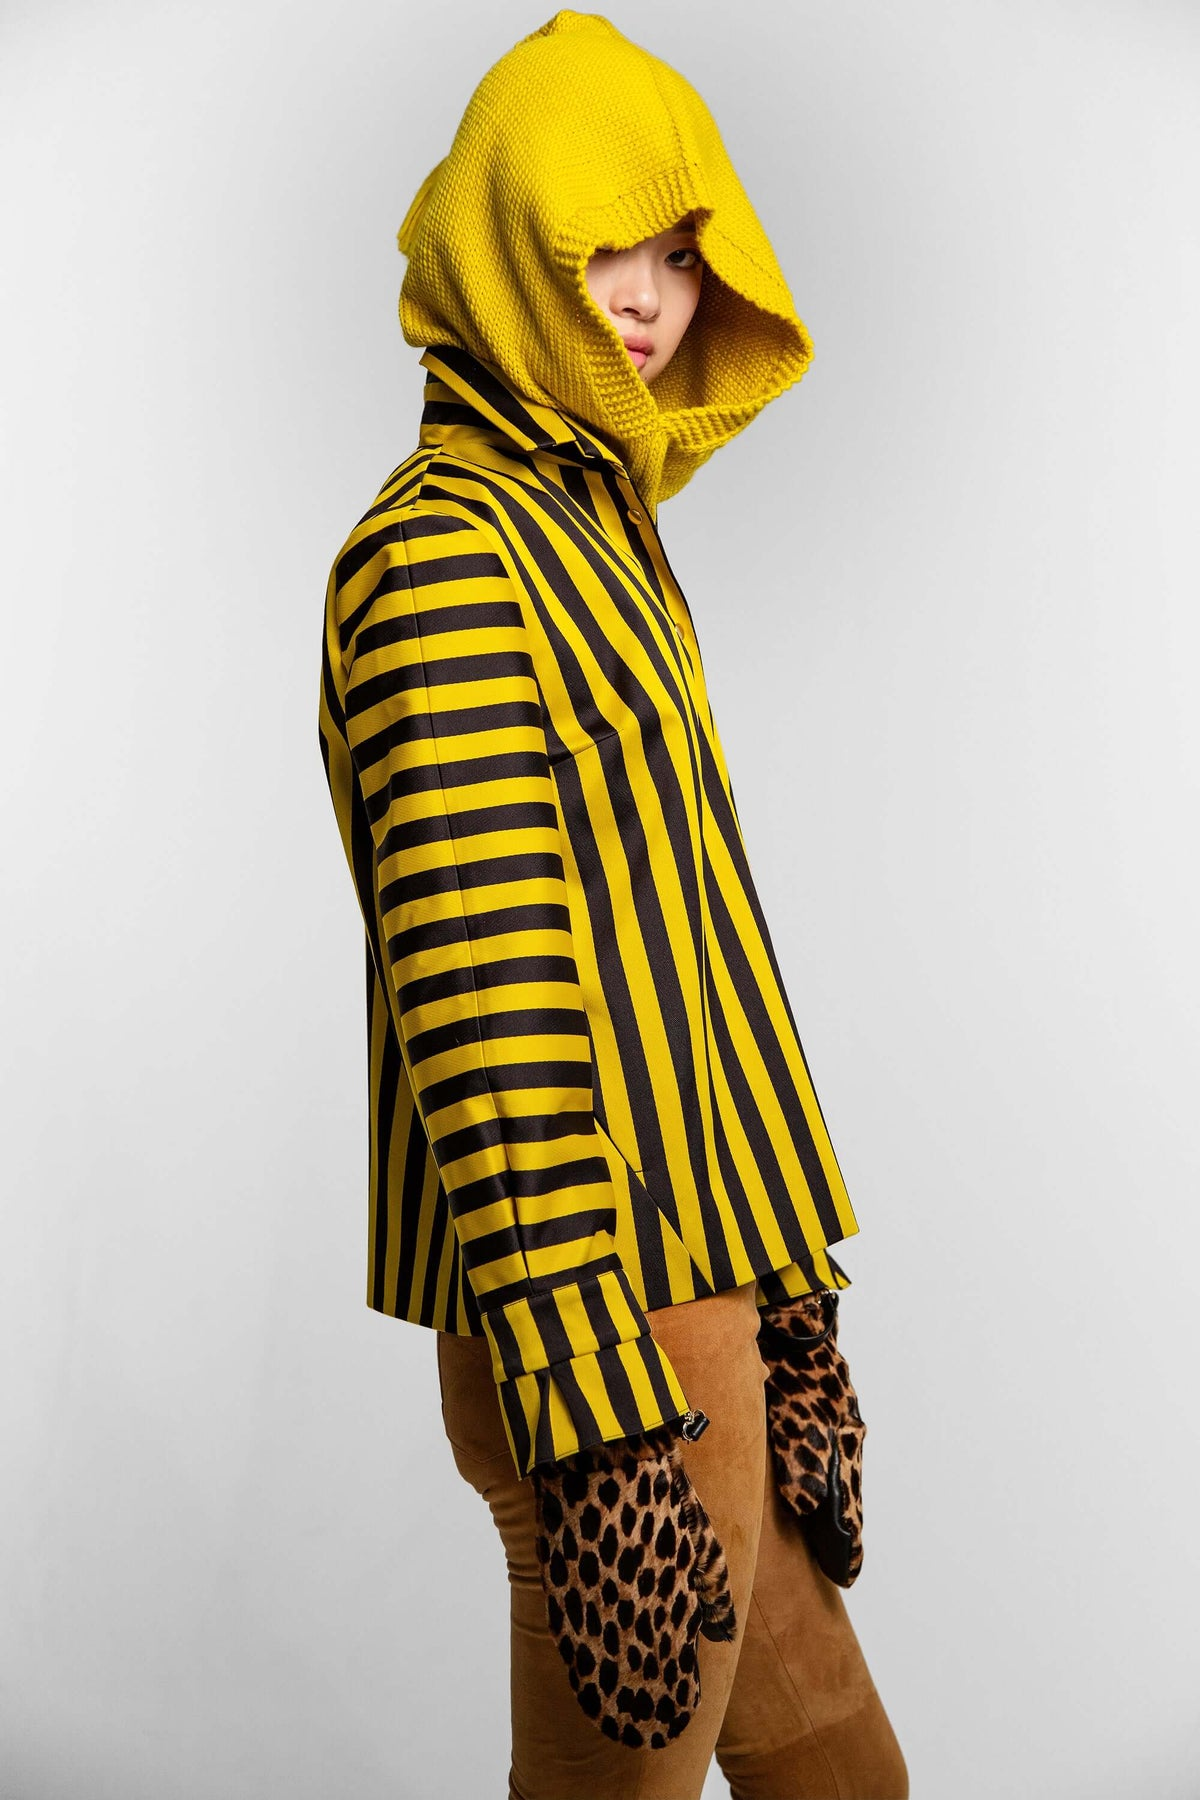 Coco jacket in bee stripes